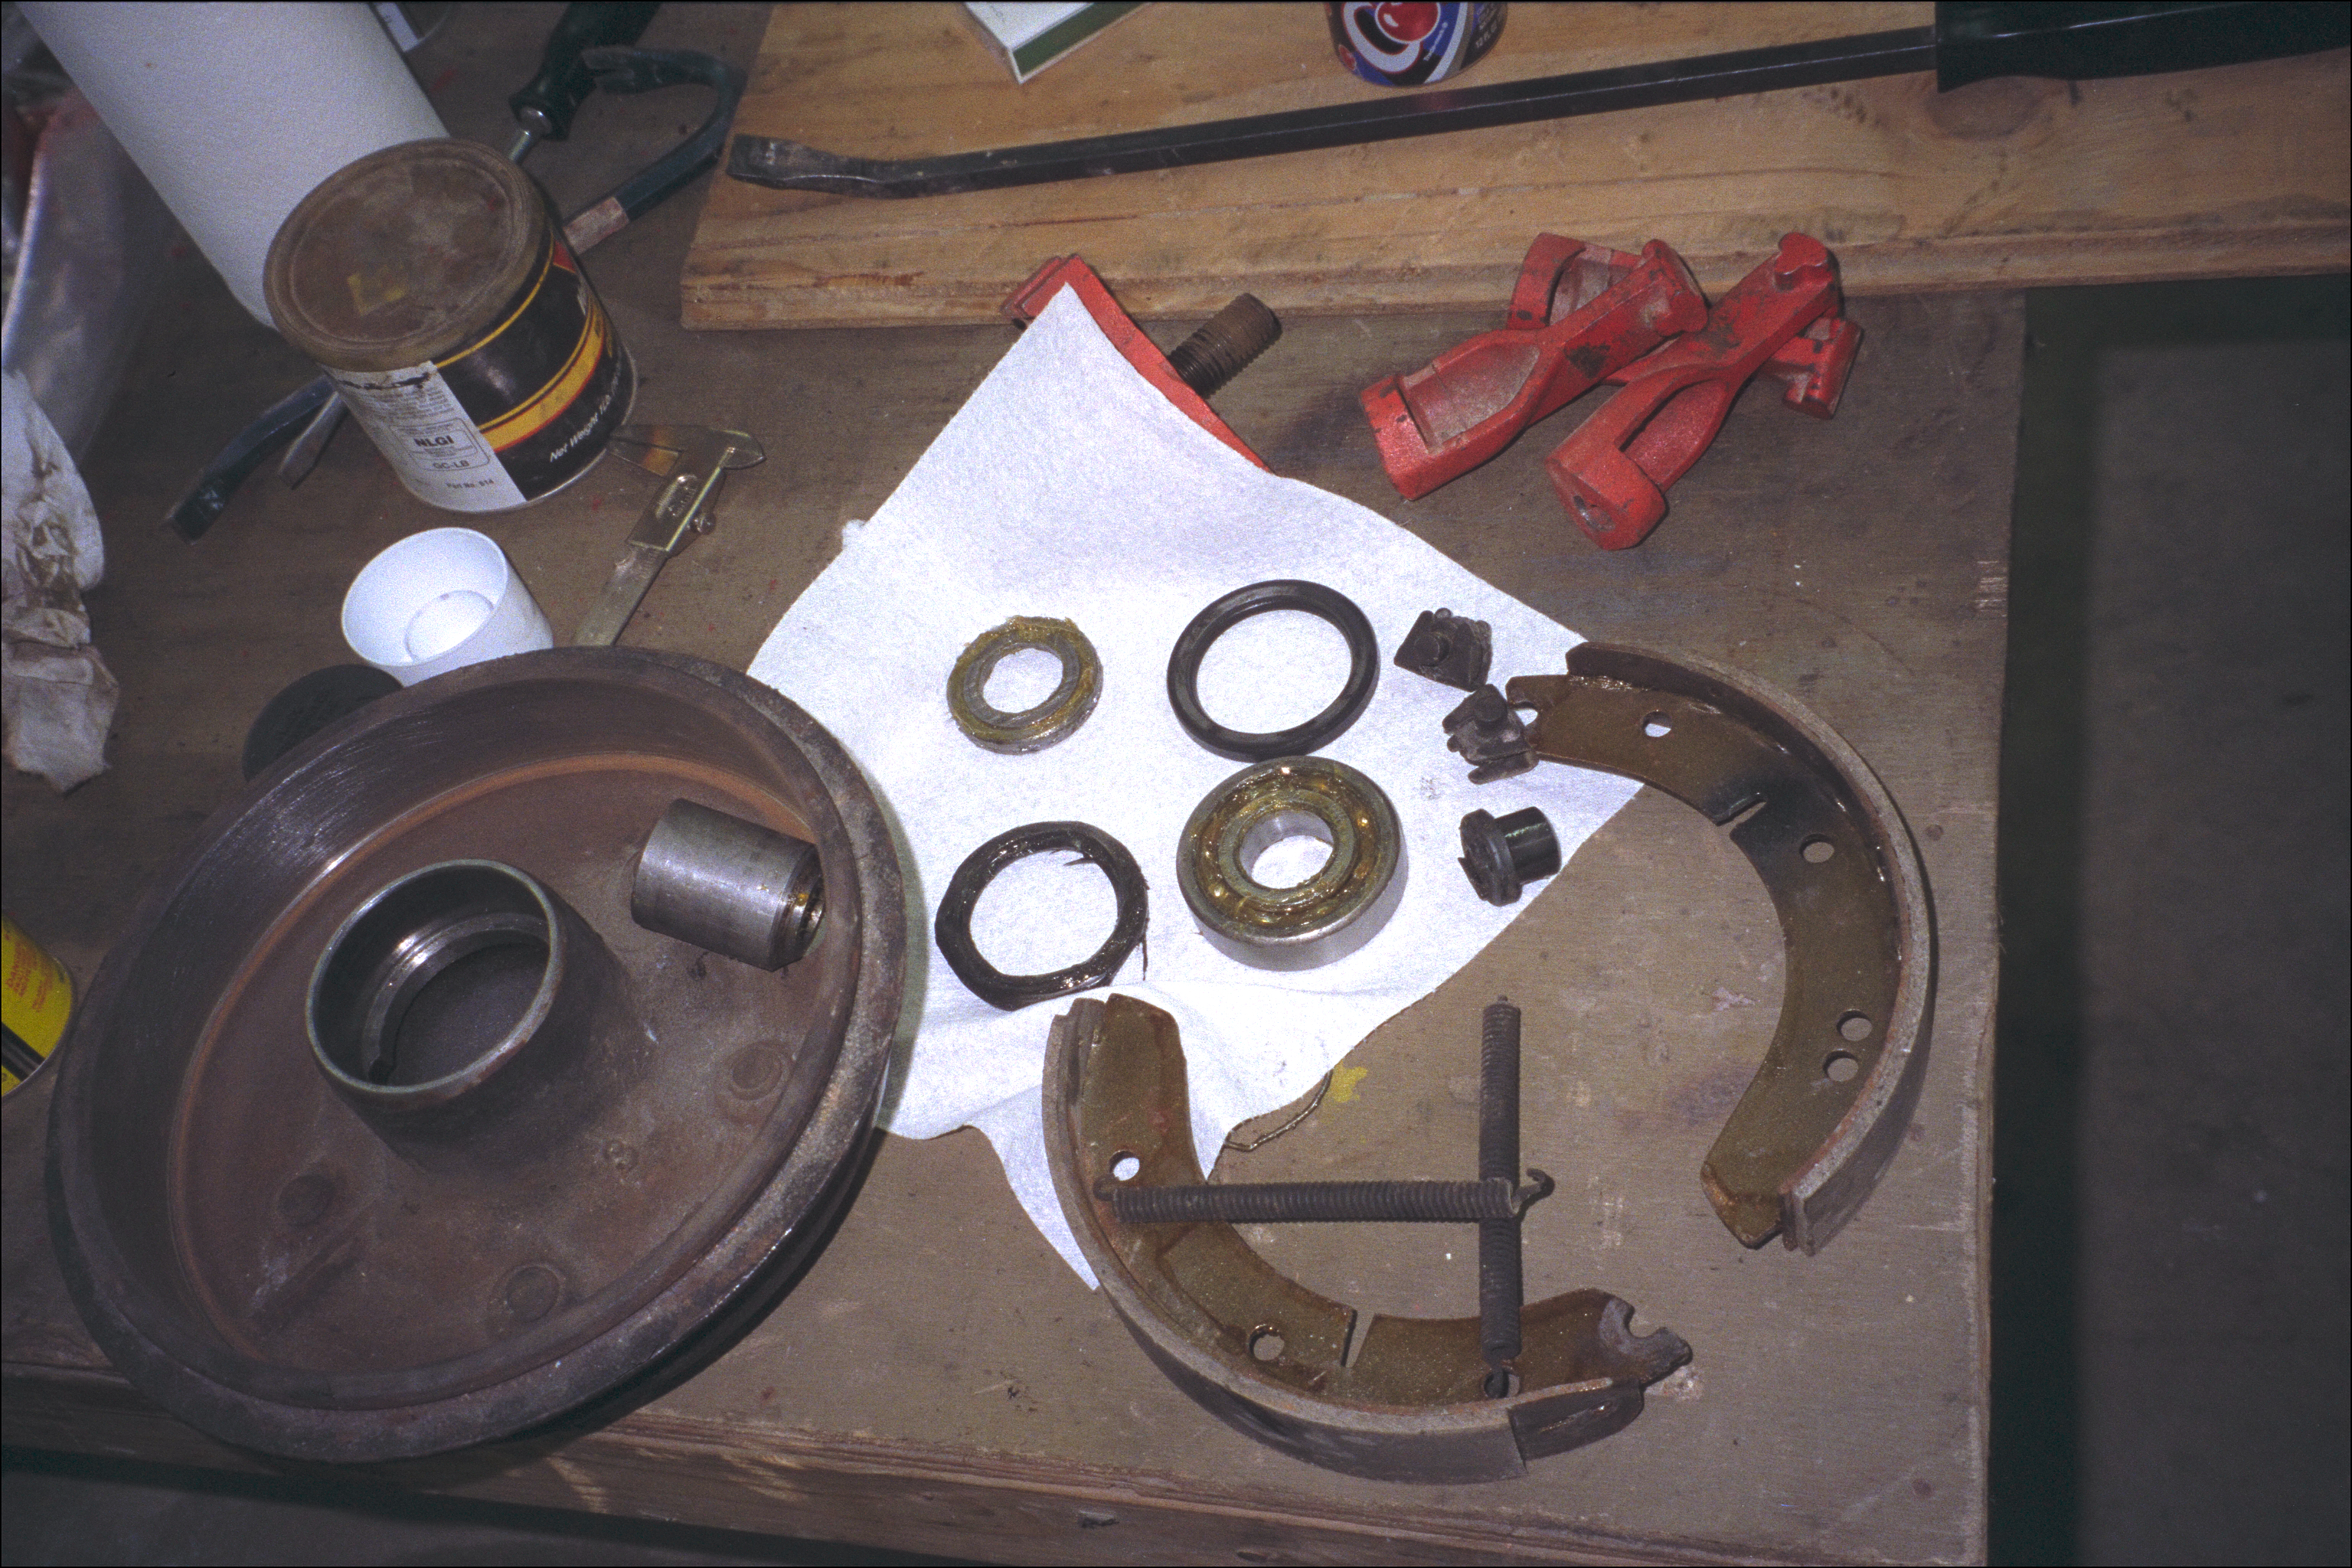 Wheels and brake parts